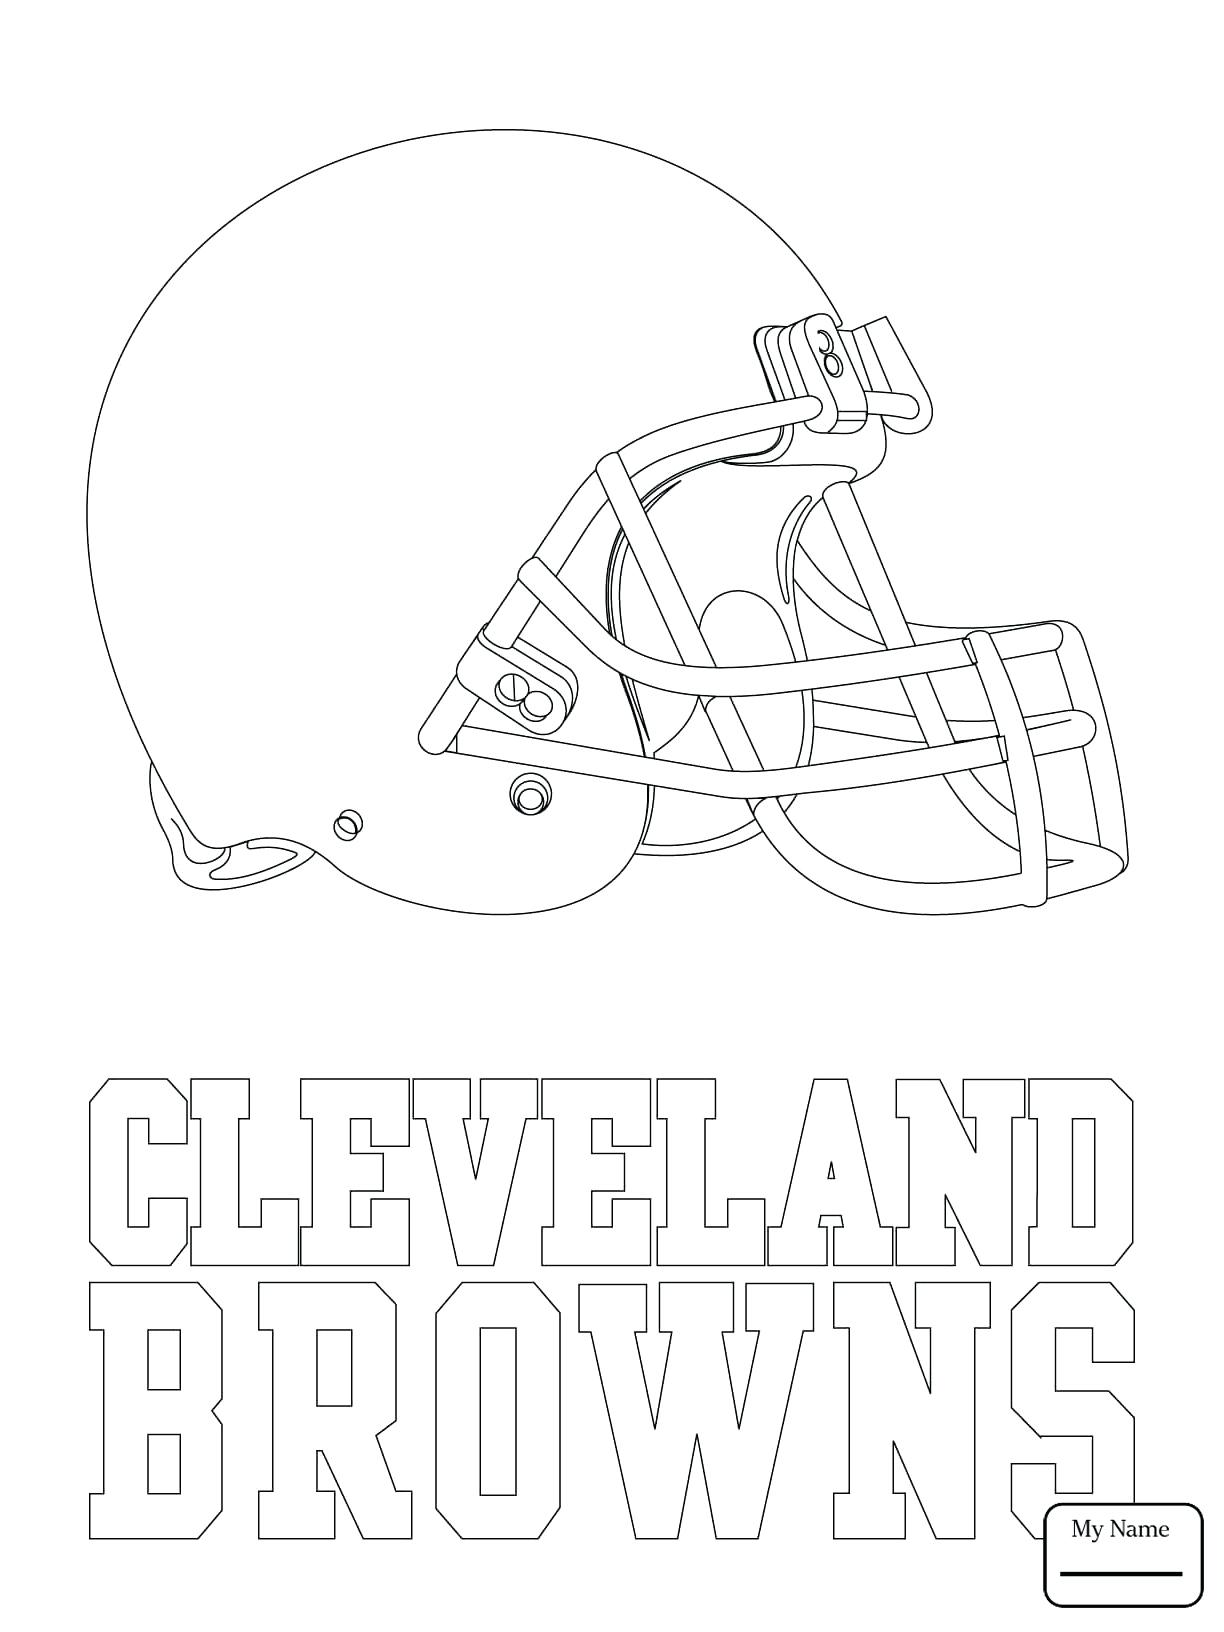 Steelers Logo Drawing at GetDrawings